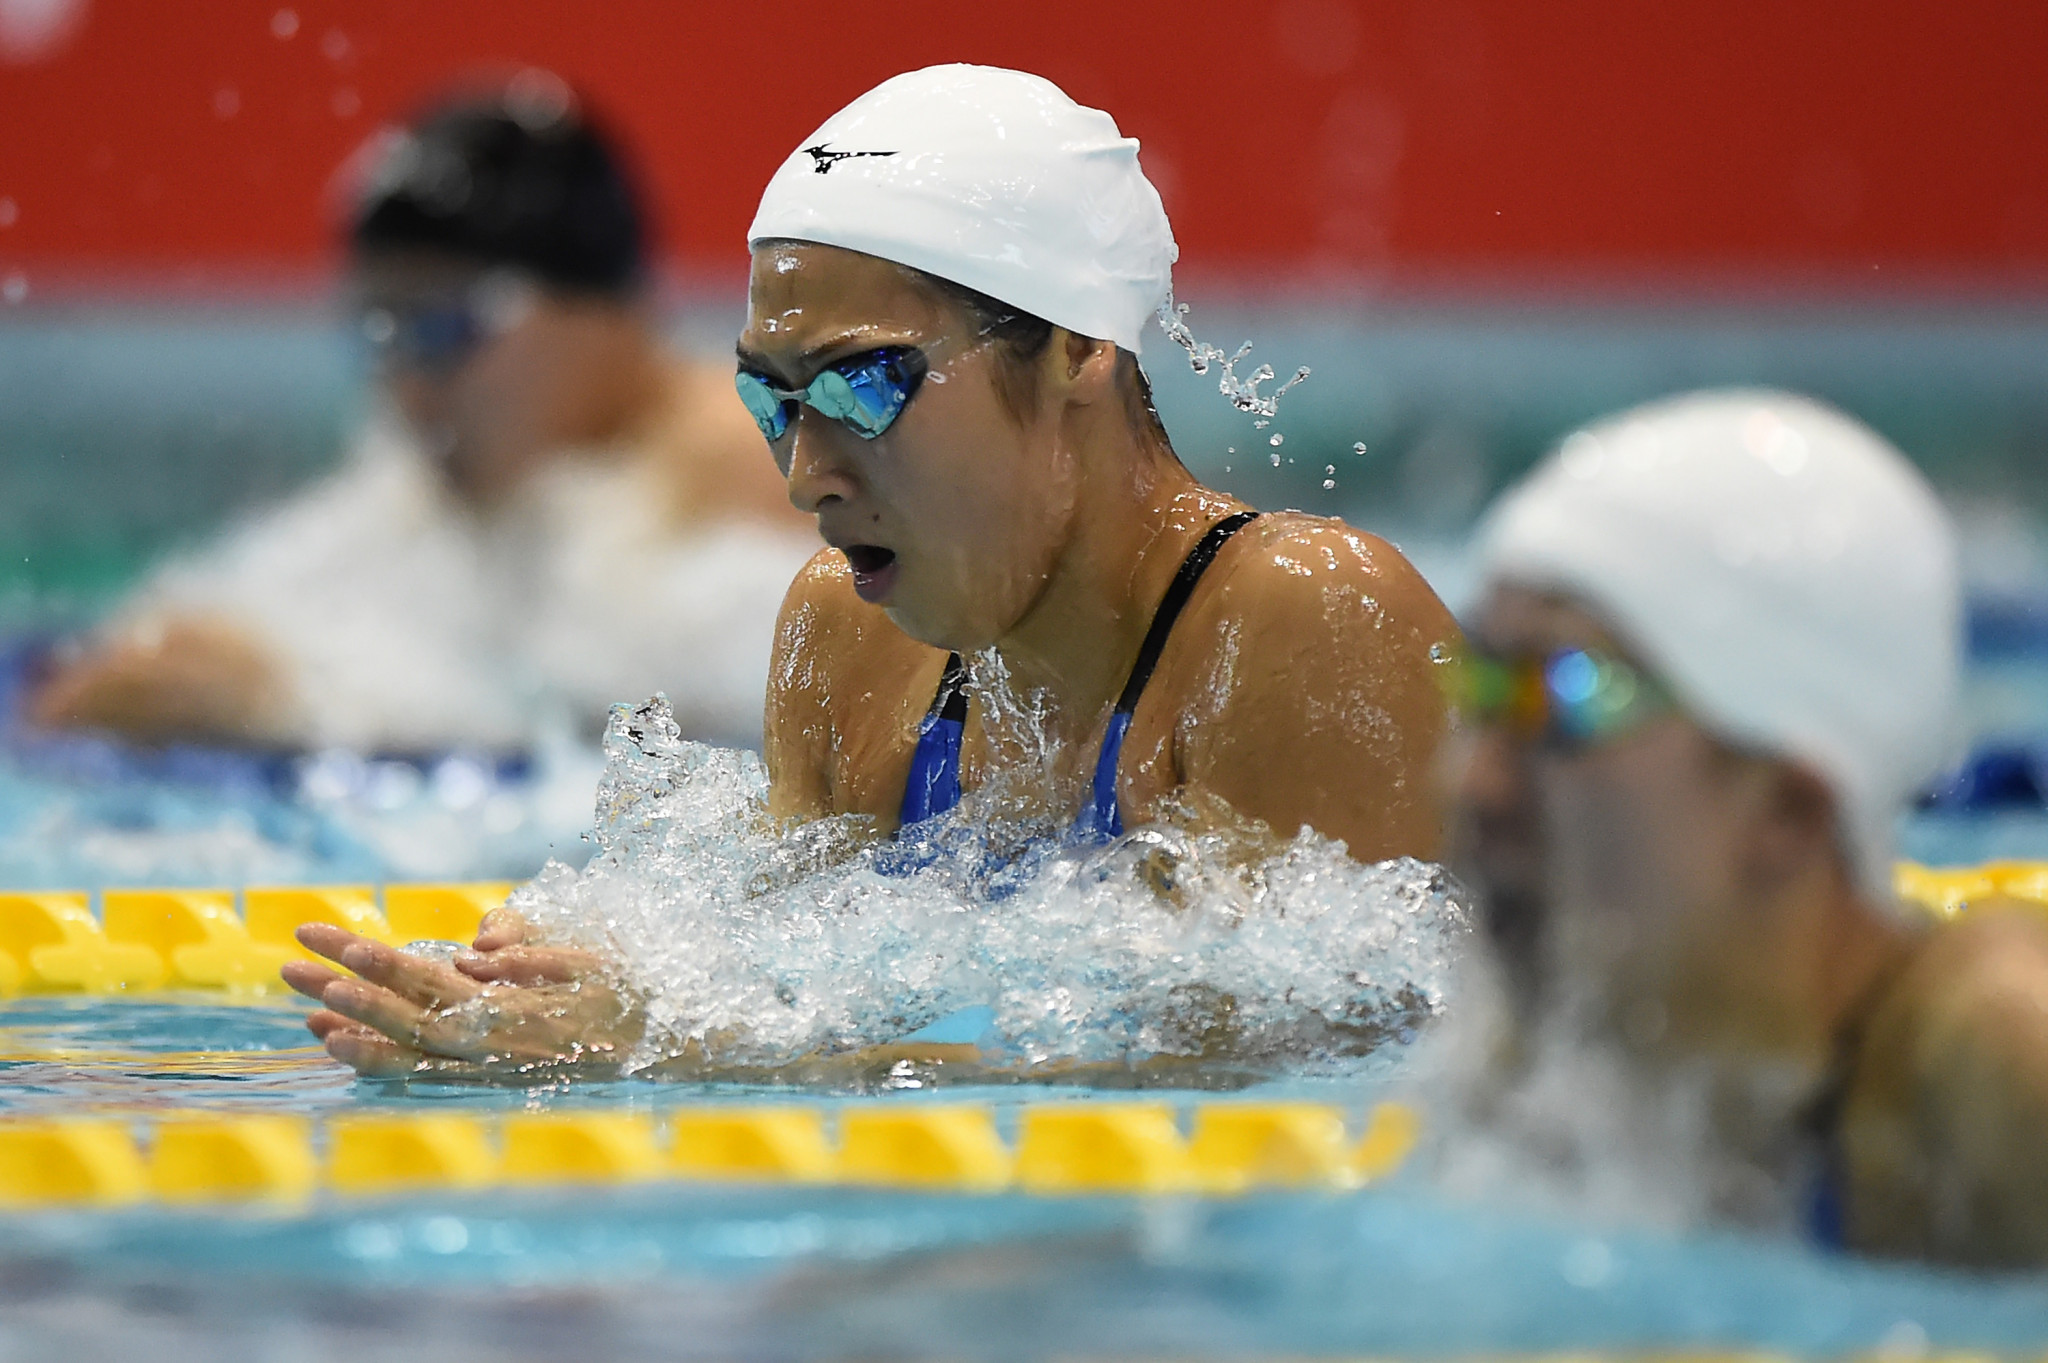 Yoshitaka Sakurada apologised for comments he made about the leukemia diagnosis of Japan's star swimmer Rikako Ikee ©Getty Images